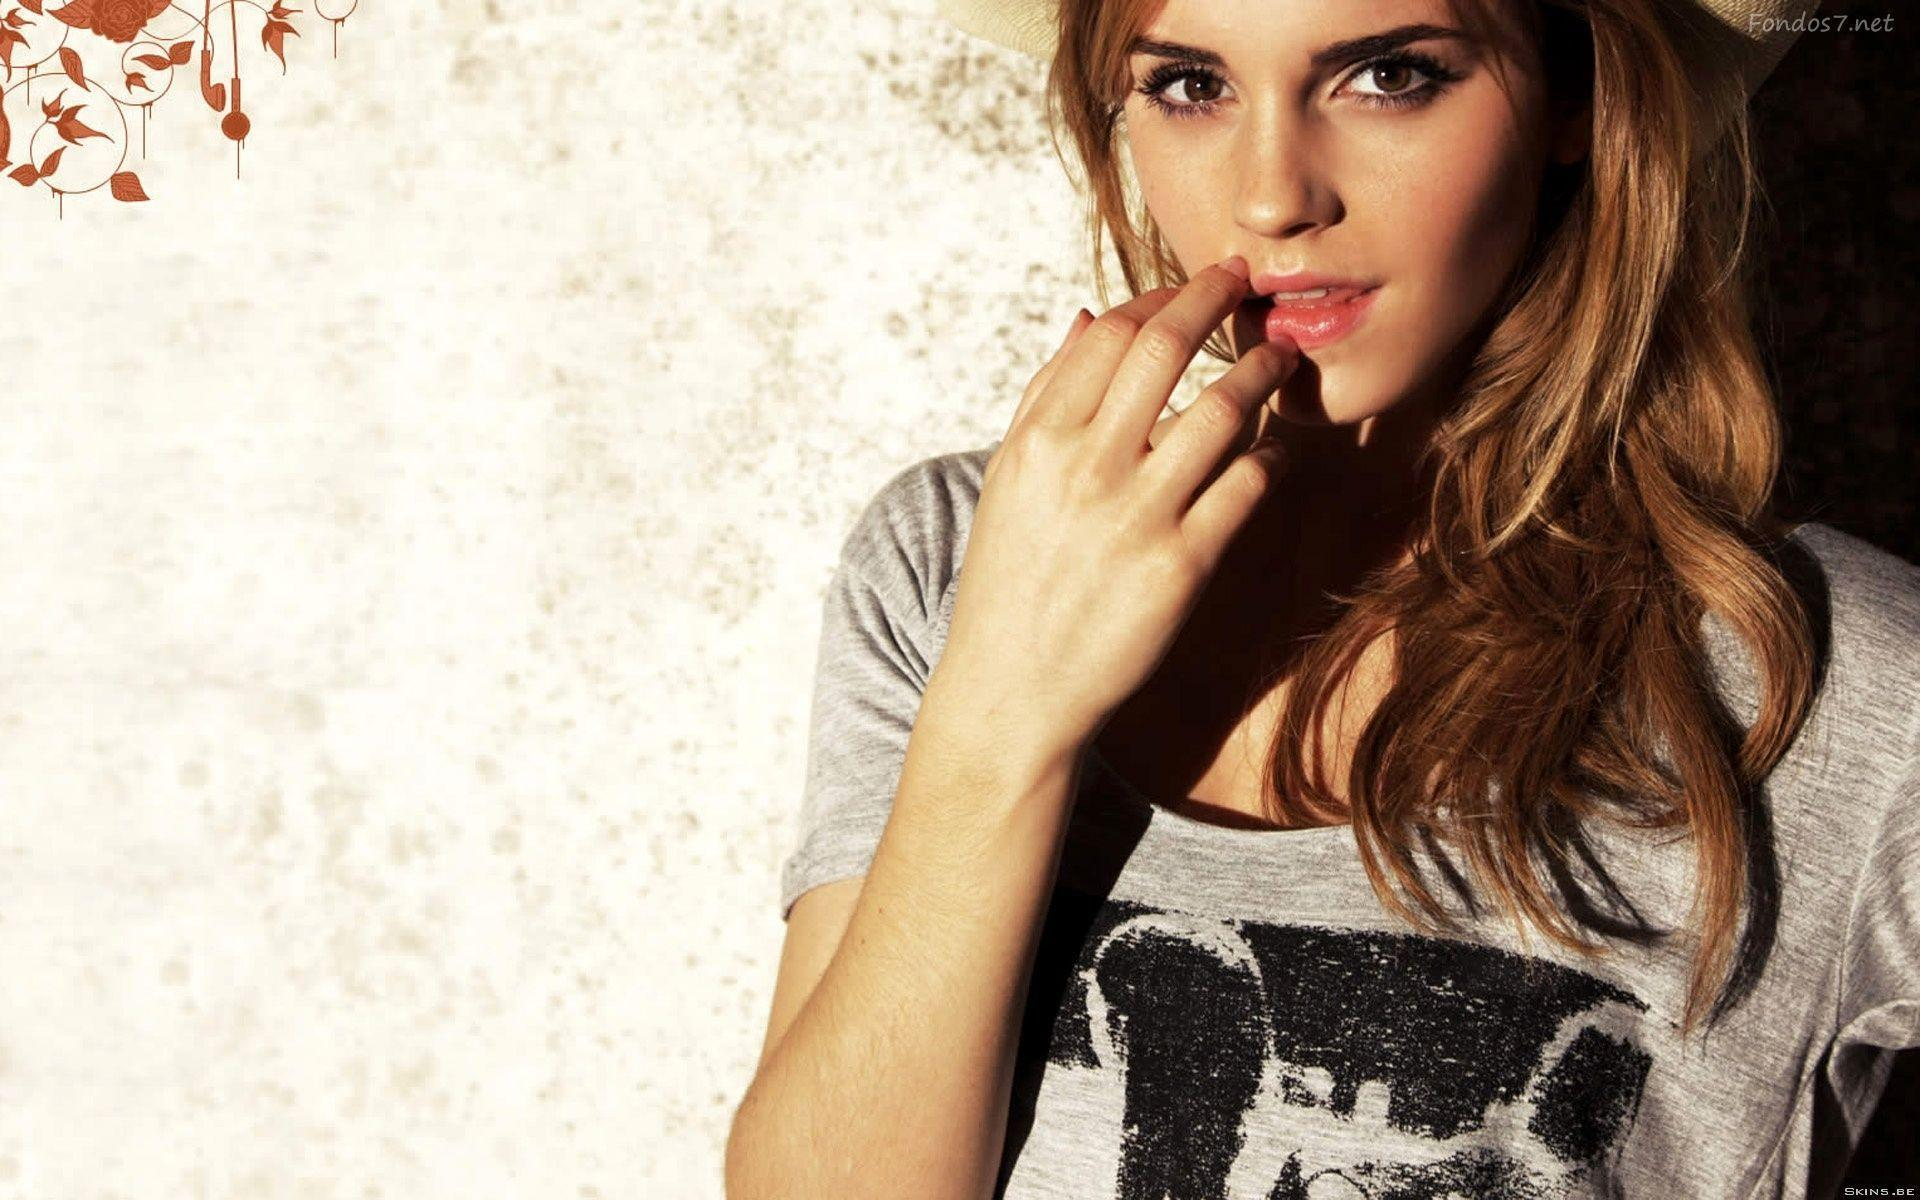 Emma Watson Wallpapers - Full HD wallpaper search - Wallpaperspalace.